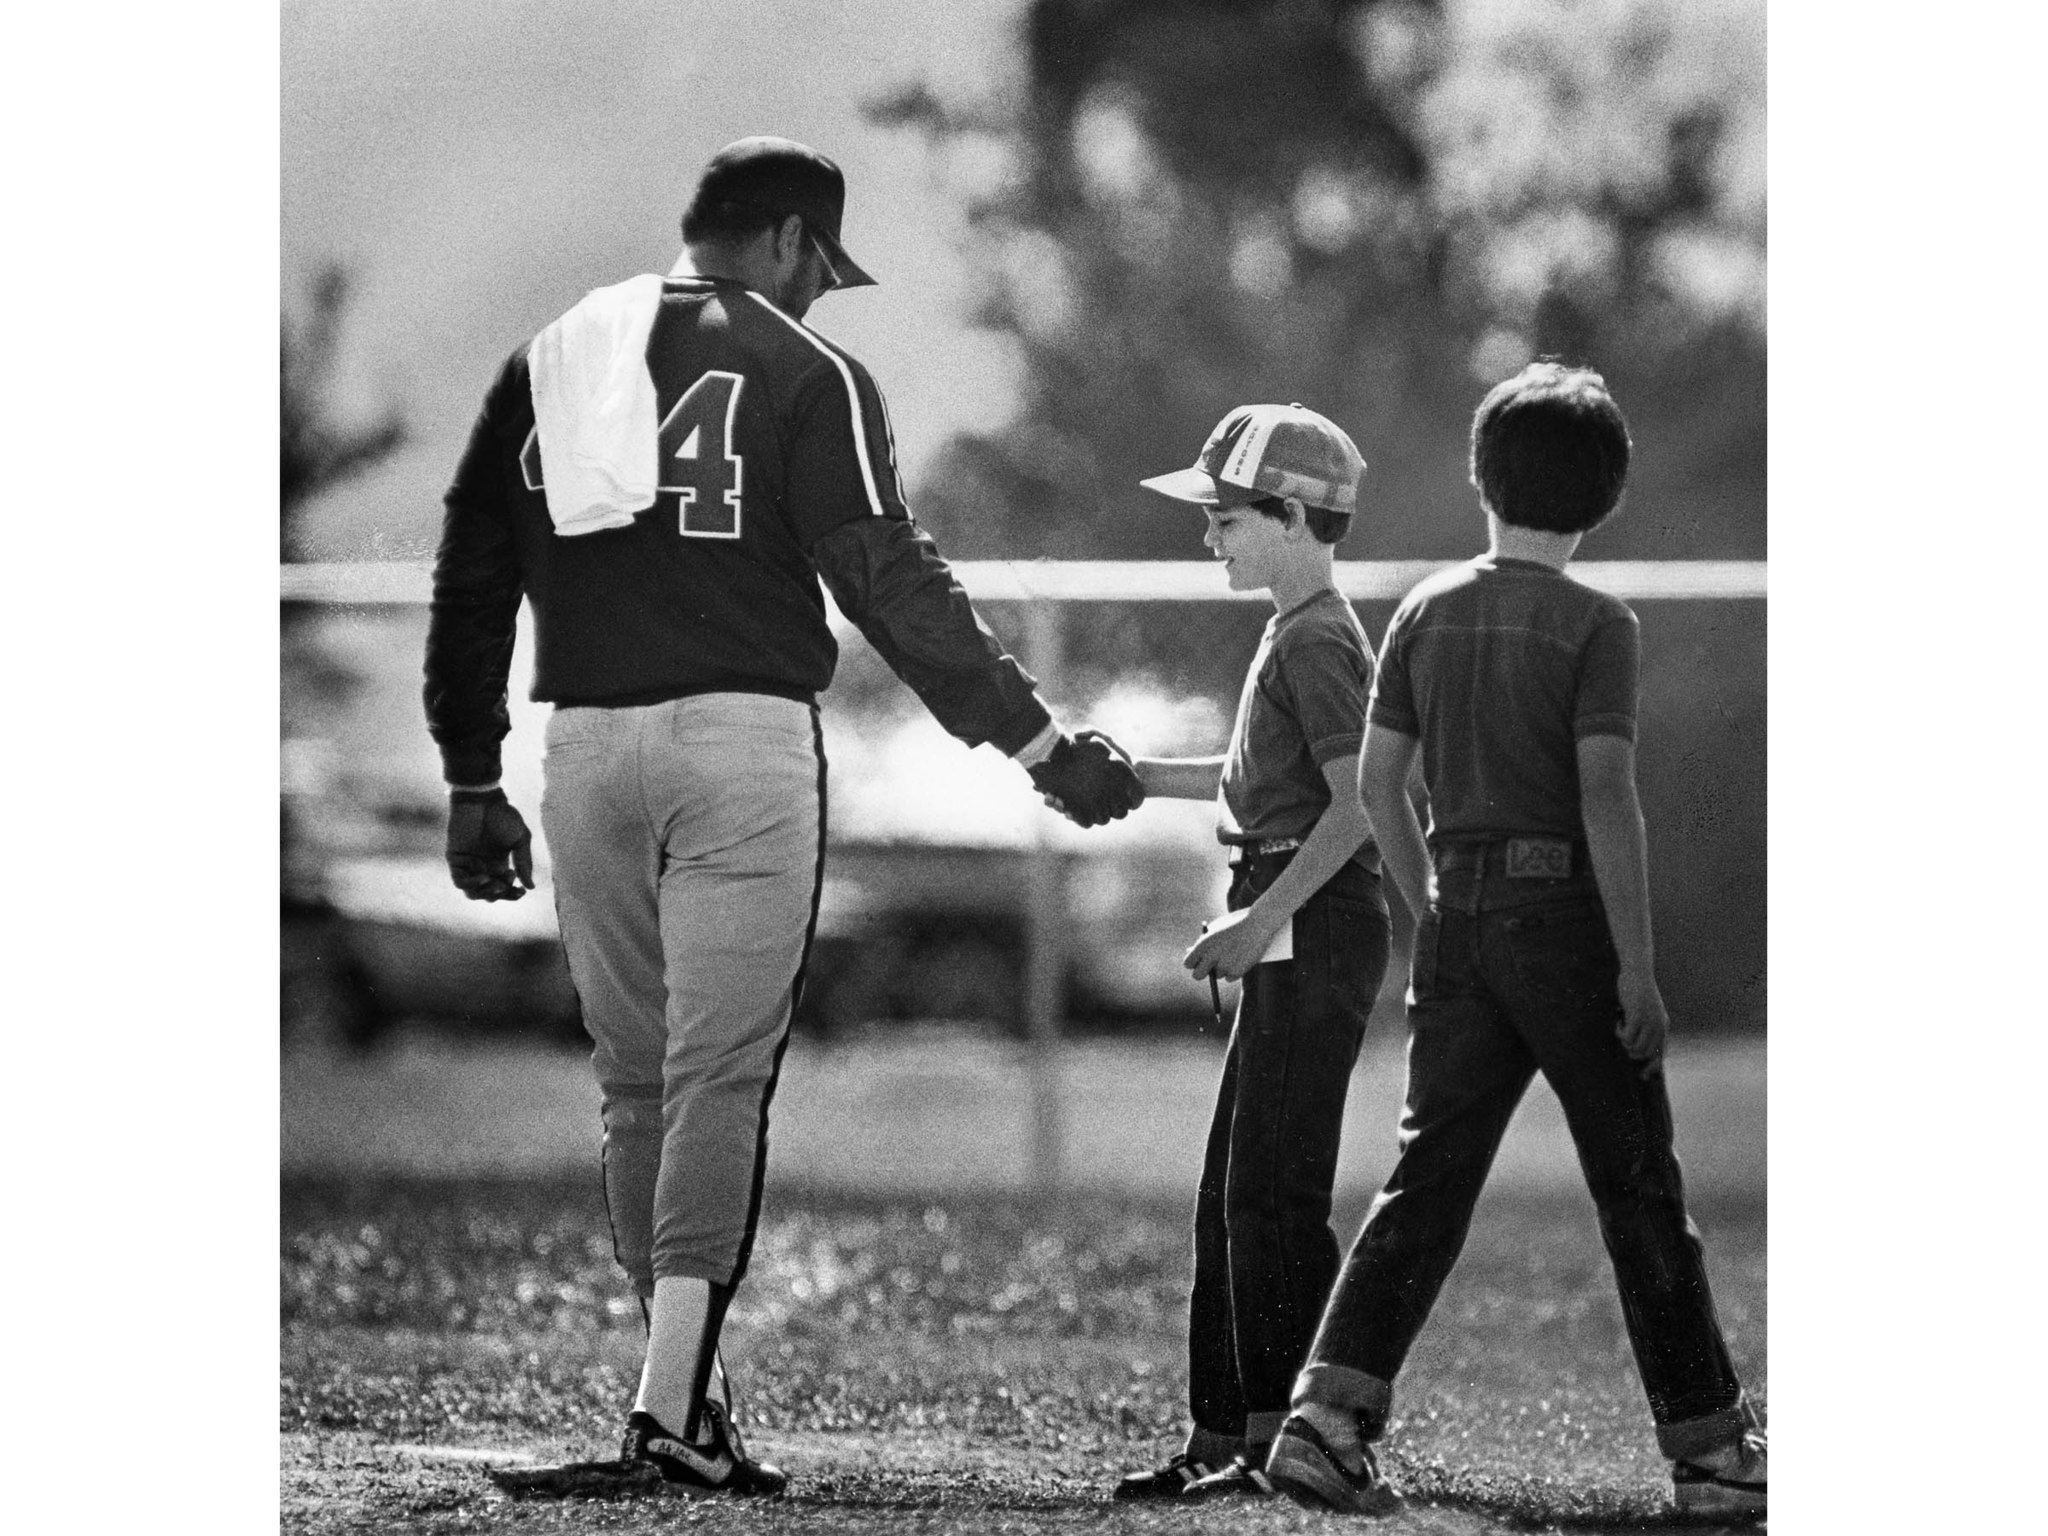 March 1983: Angels slugger Reggie Jackson shakes hand of young admirer before leaving practice field